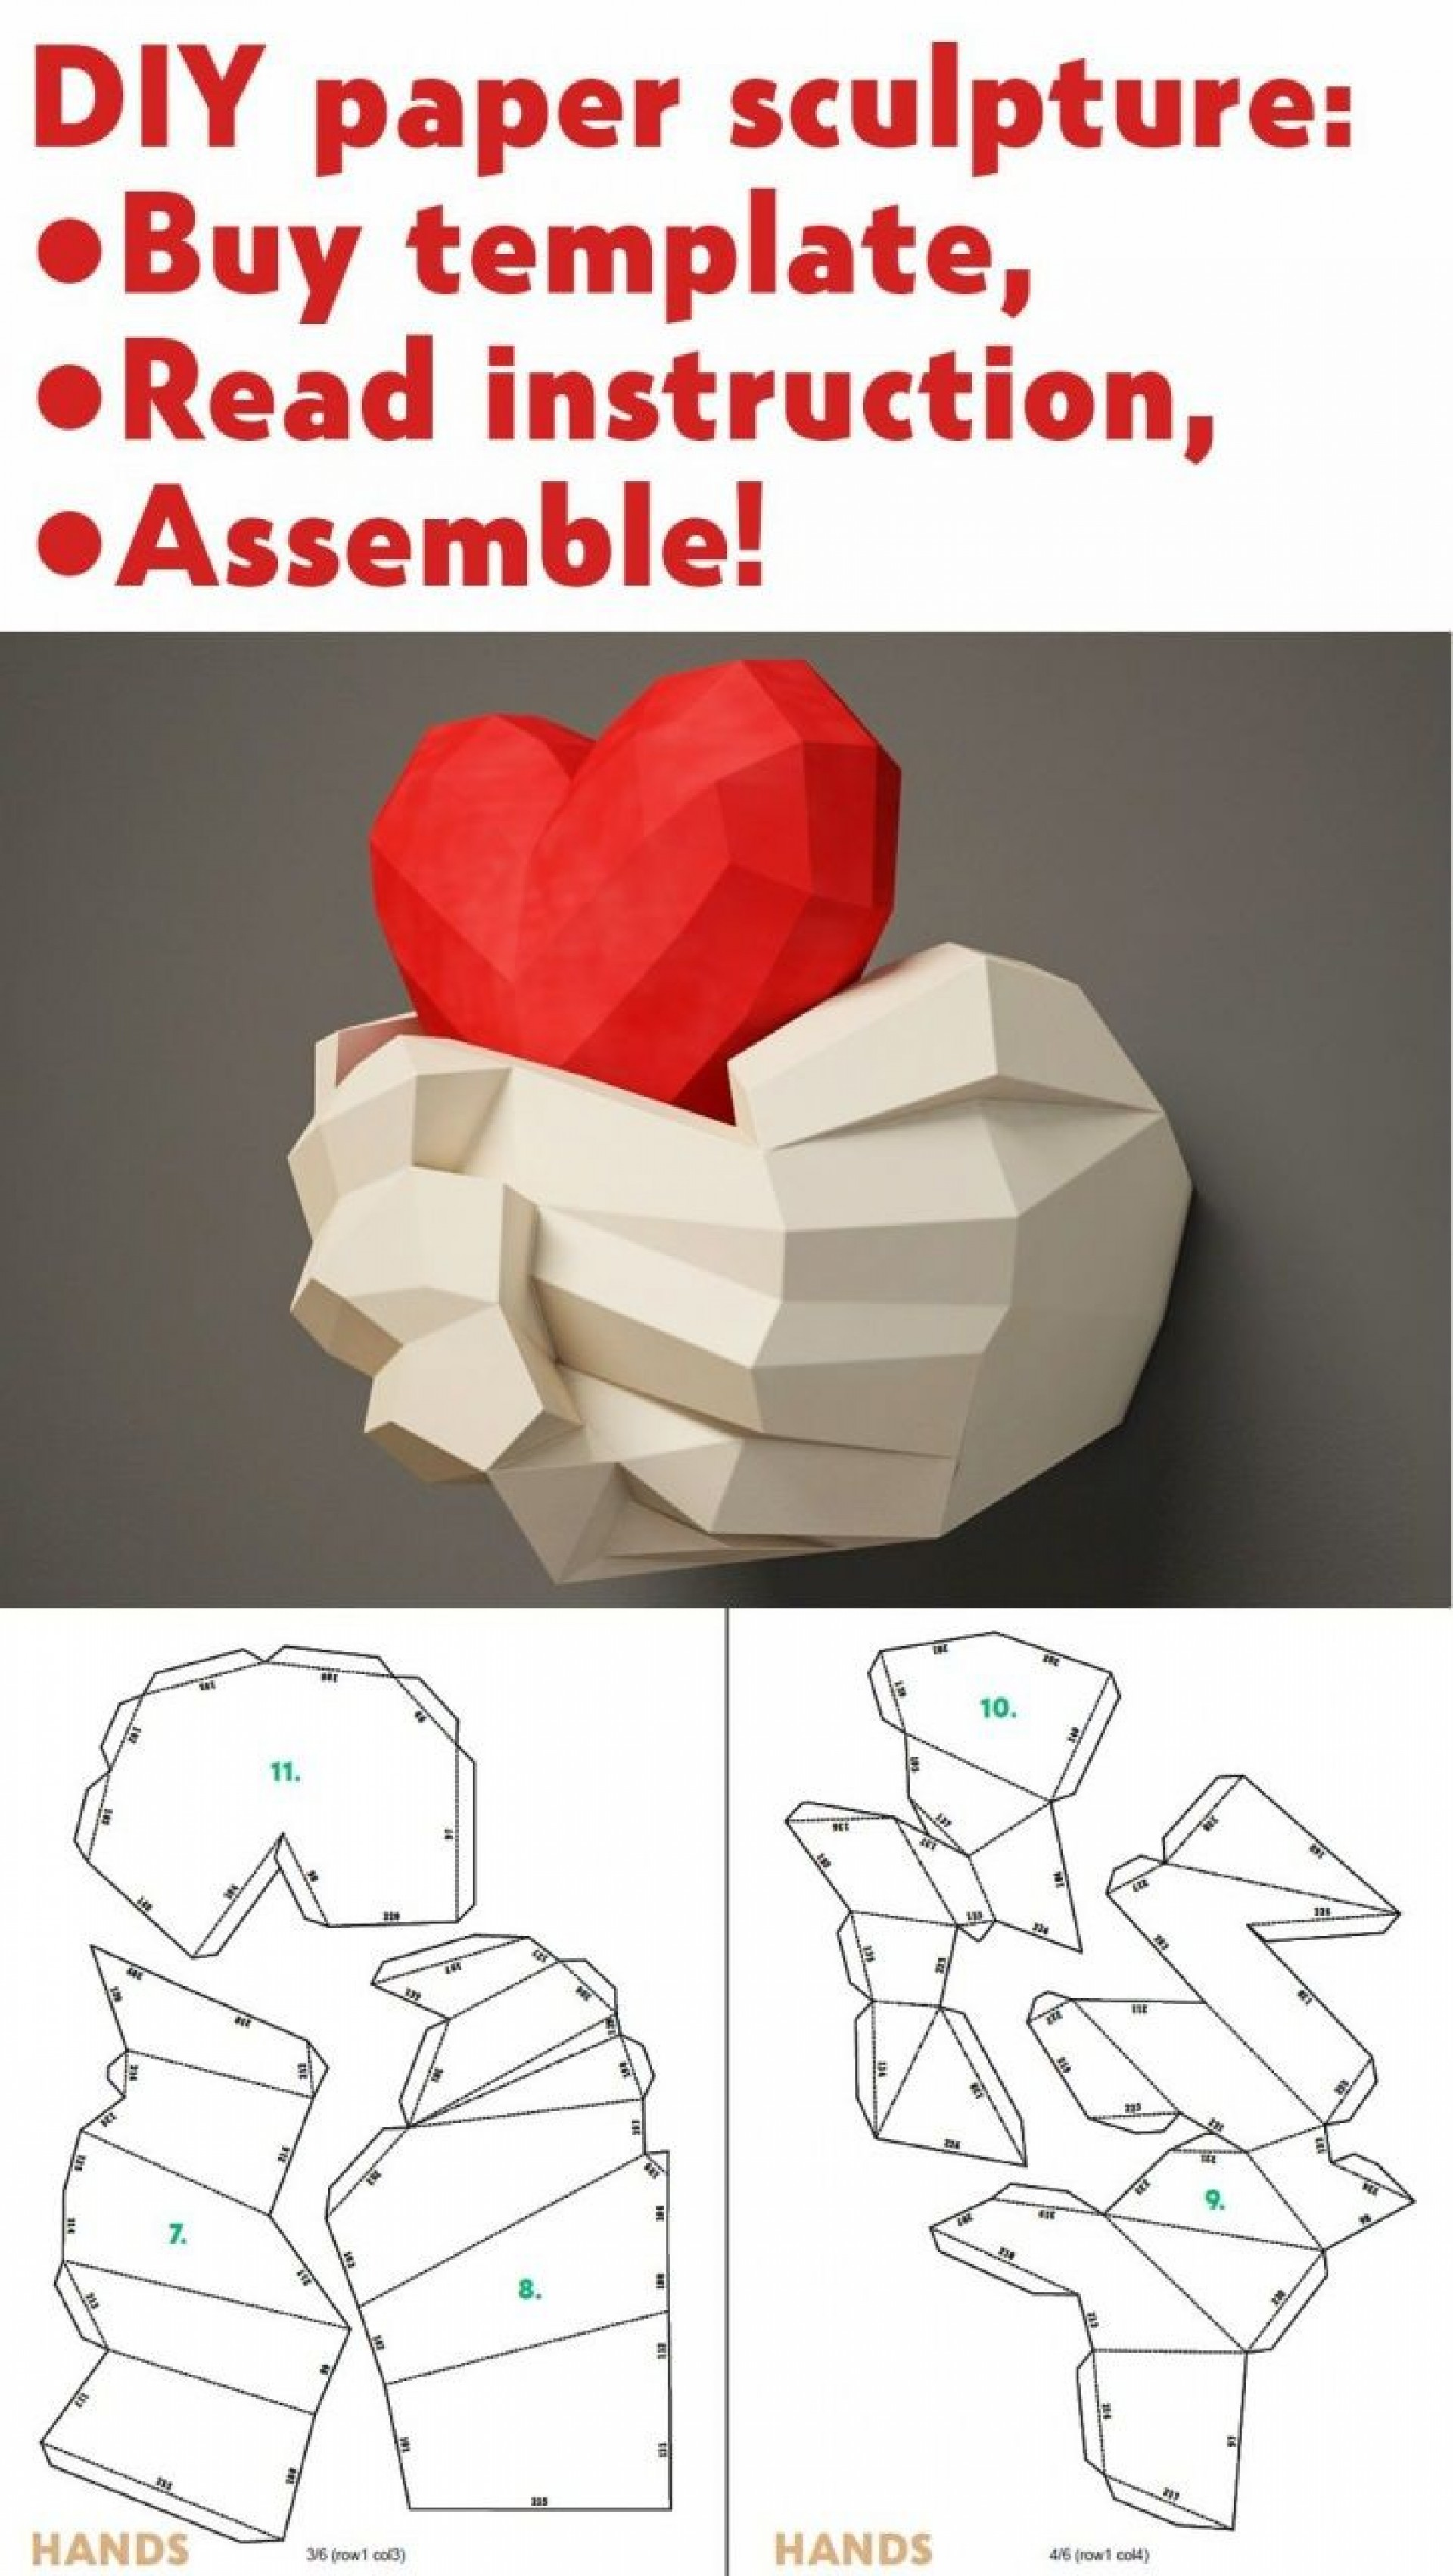 002 Awesome 3d Paper Art Template Sample  Templates Pdf1920